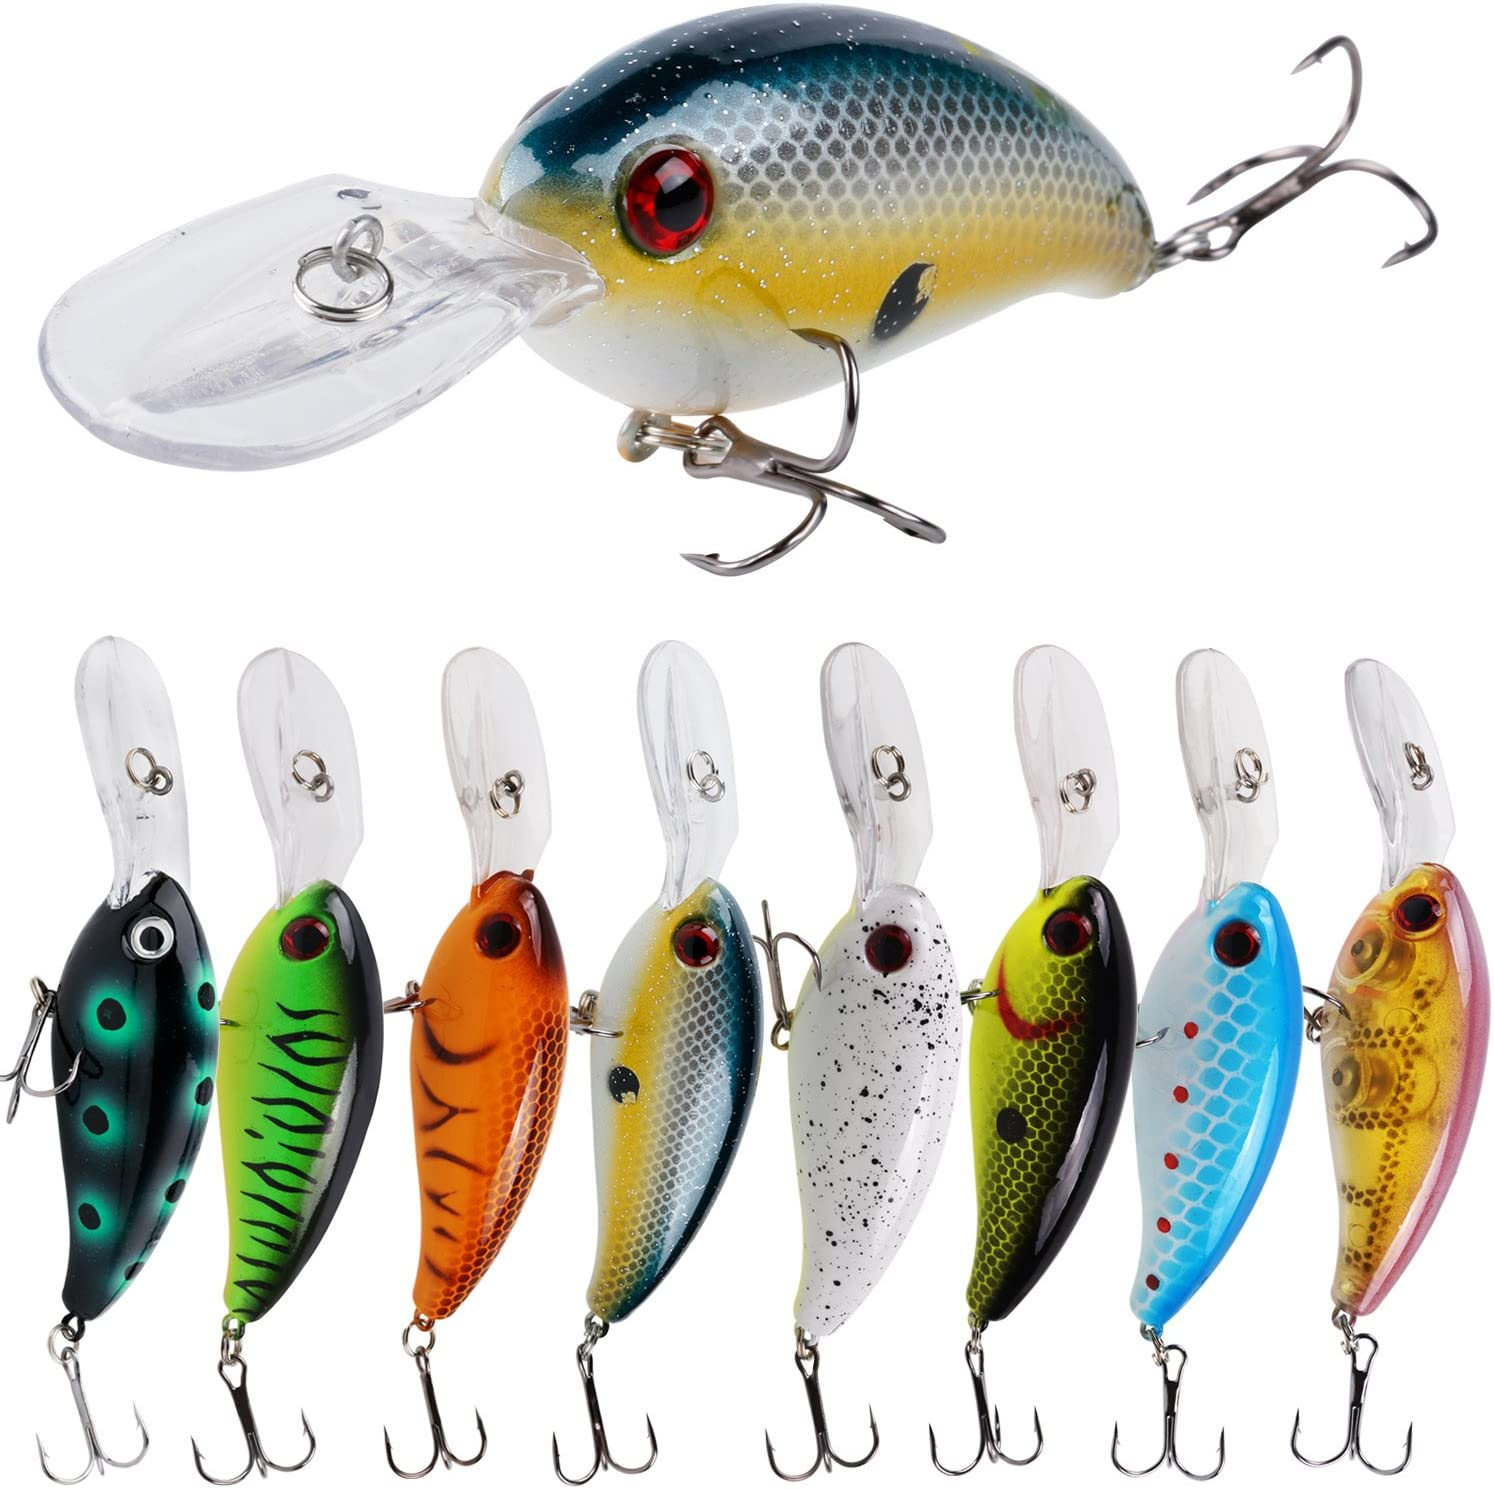 Amazon.com : YONGZHI Fishing Lures Shallow Deep Diving Swimbait